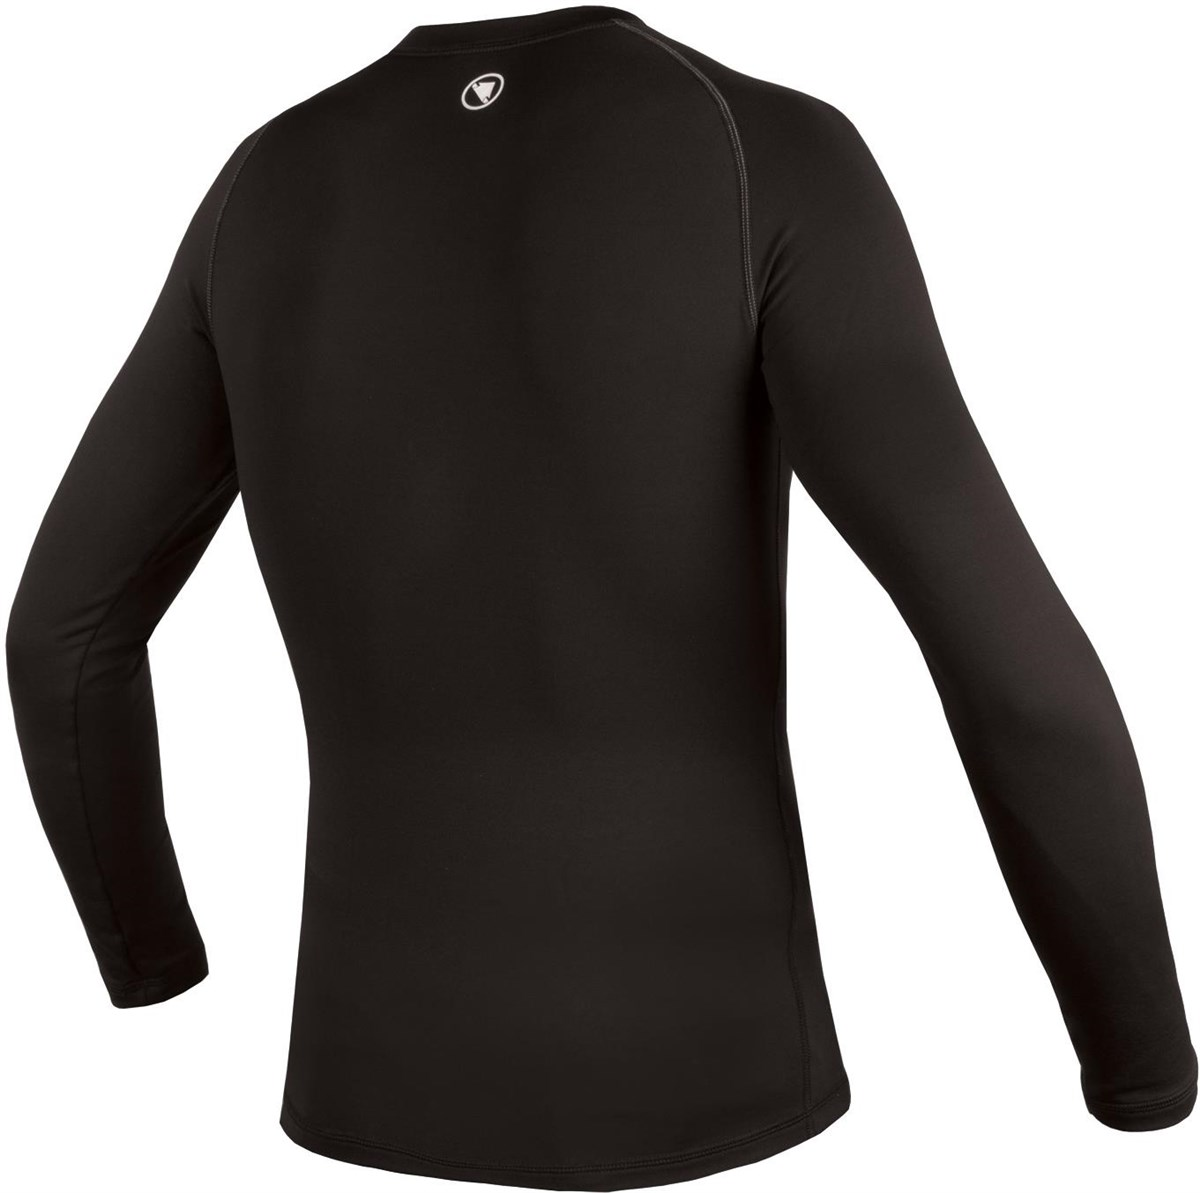 Endura Frontline Long Sleeve Cycling Base Layer AW17